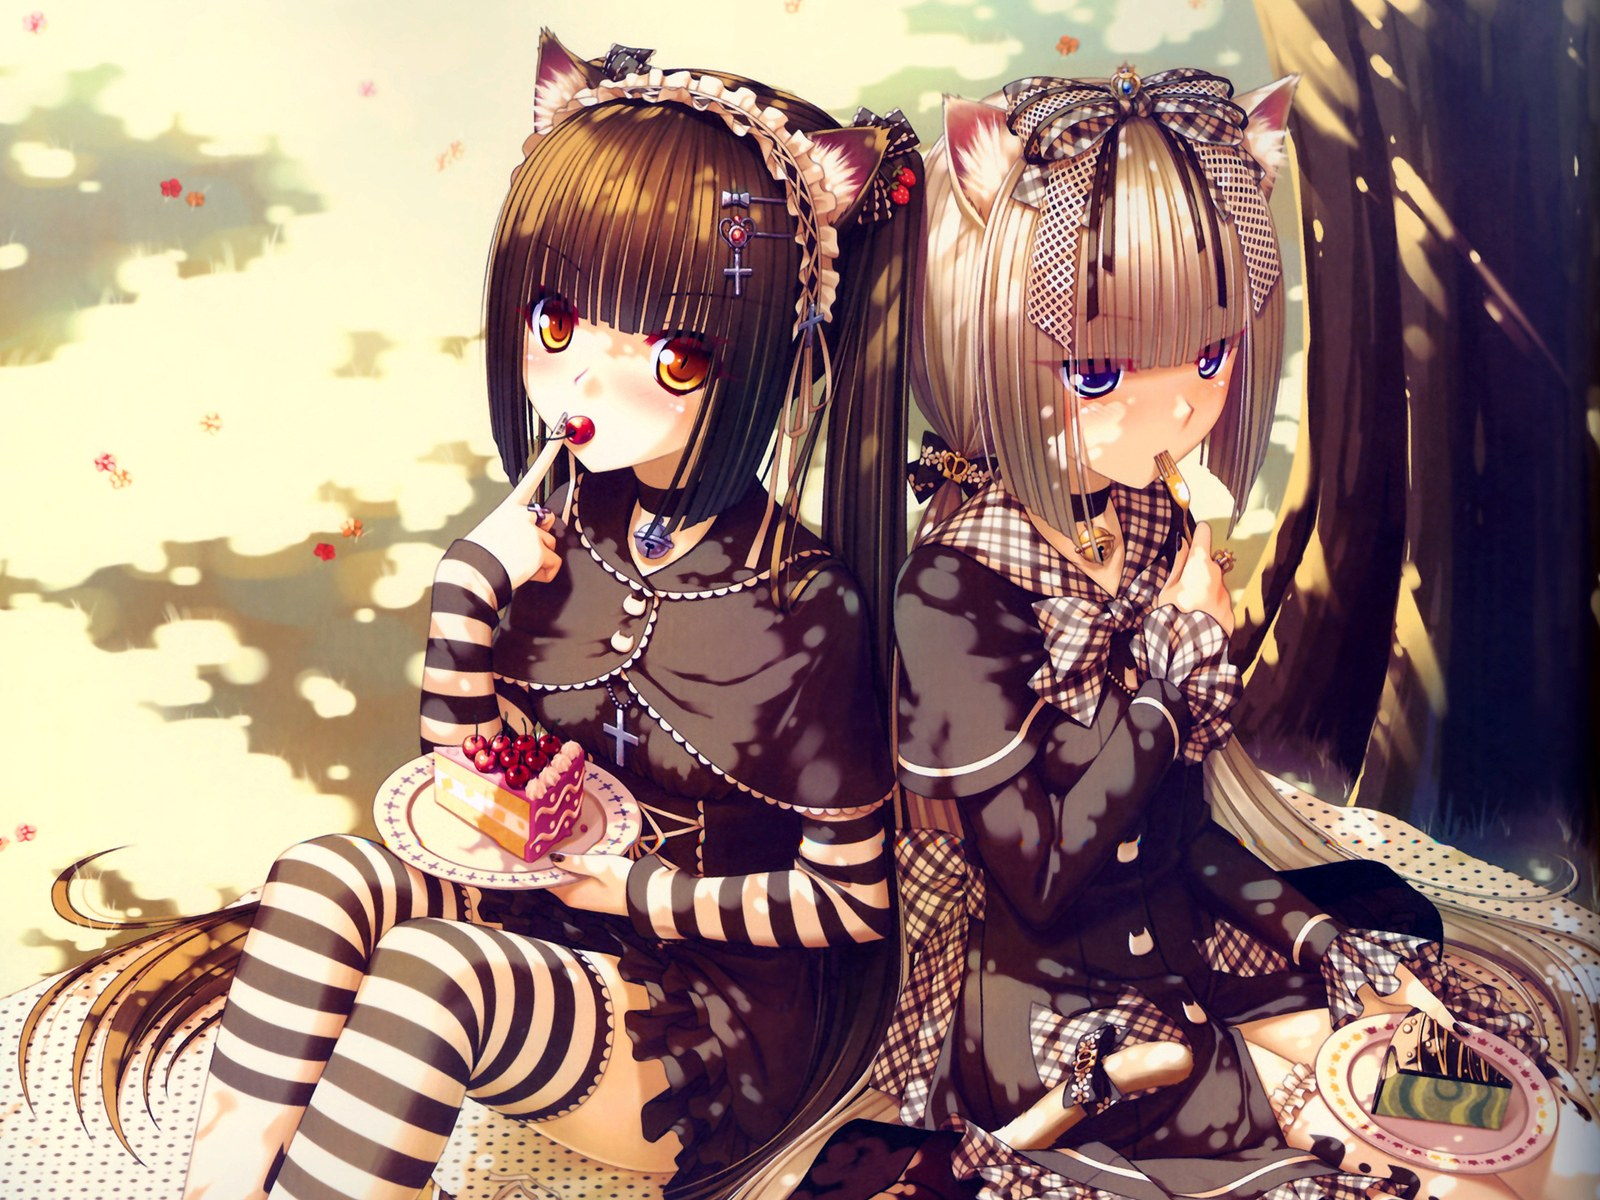 Anime Wallpapers Cute Anime girl wallpaper 1600x1200